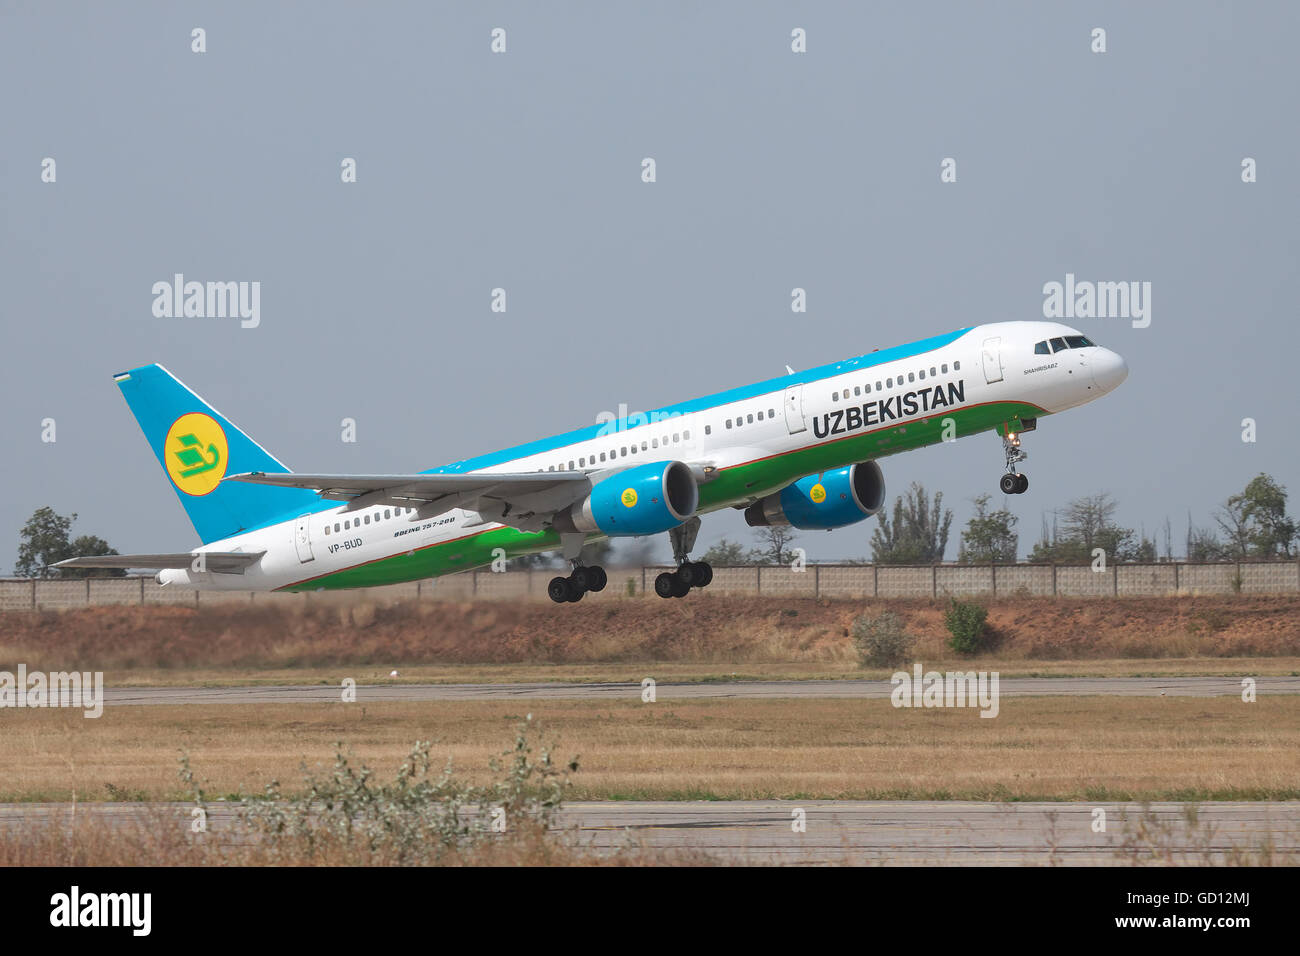 Simferopol, Ukraine - September 13, 2010: Uzbekistan Airways Bowing 757-200 is taking off from the airport - Stock Image